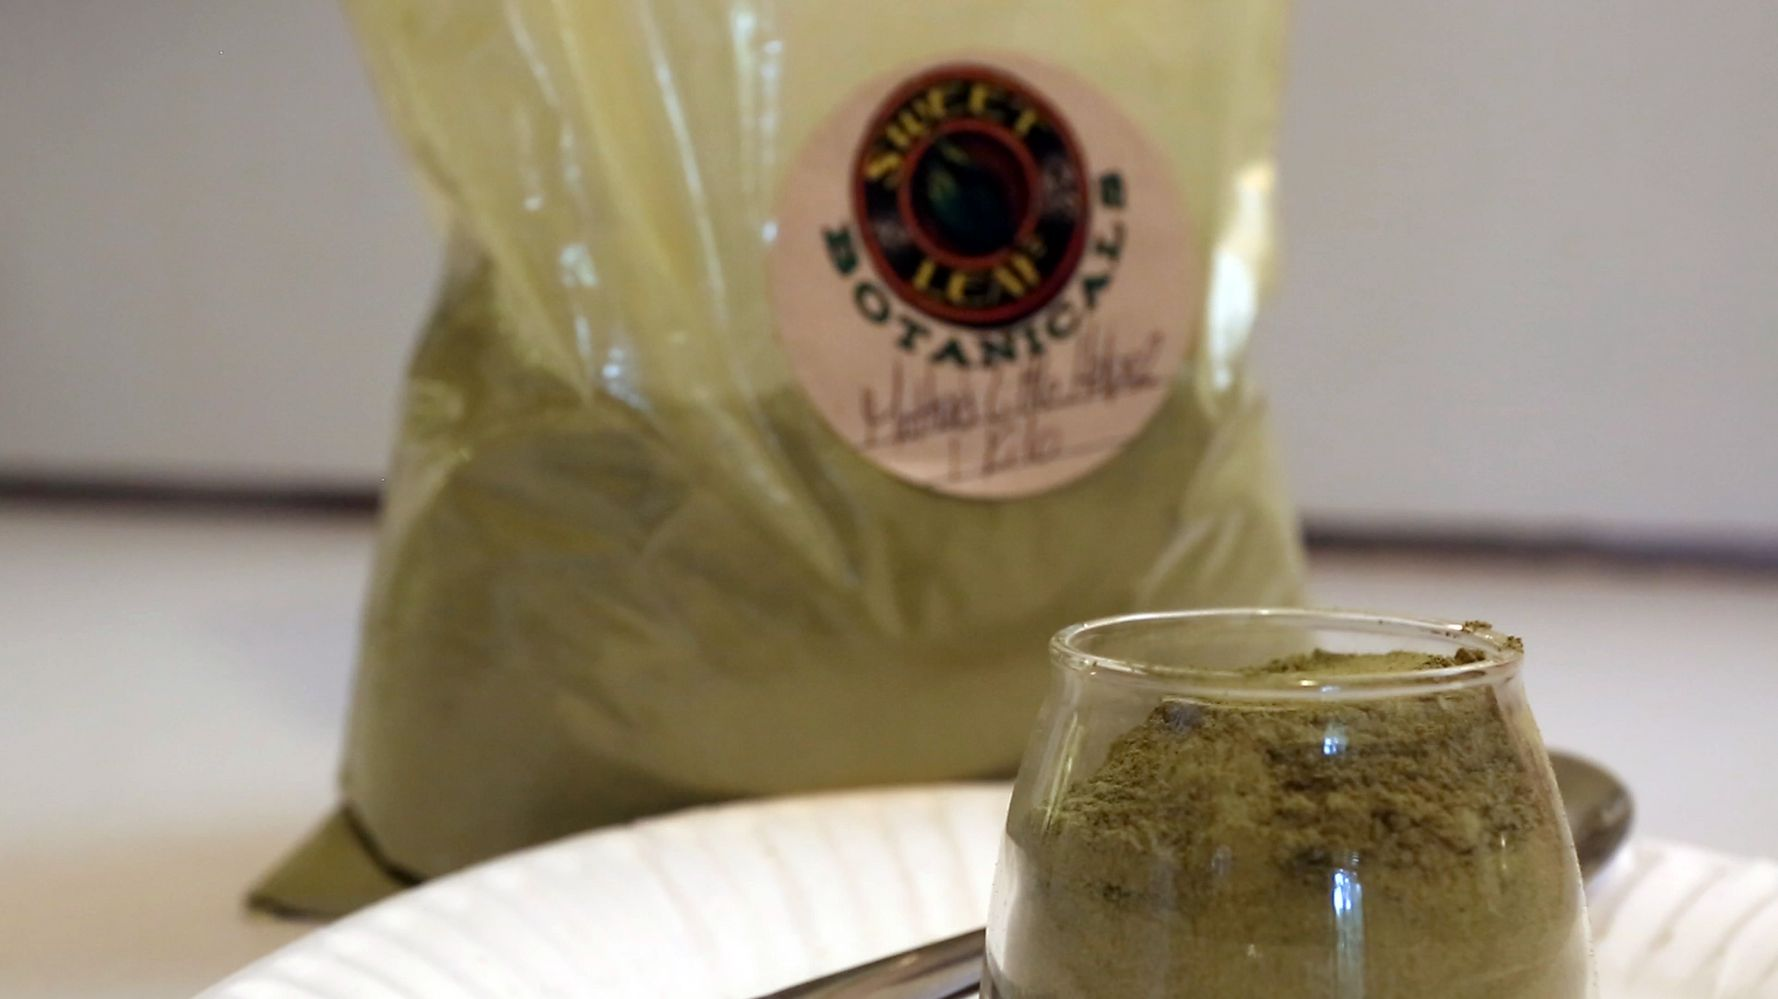 Does Kratom Really Kill? Officials Aren't Telling Us The Whole Story